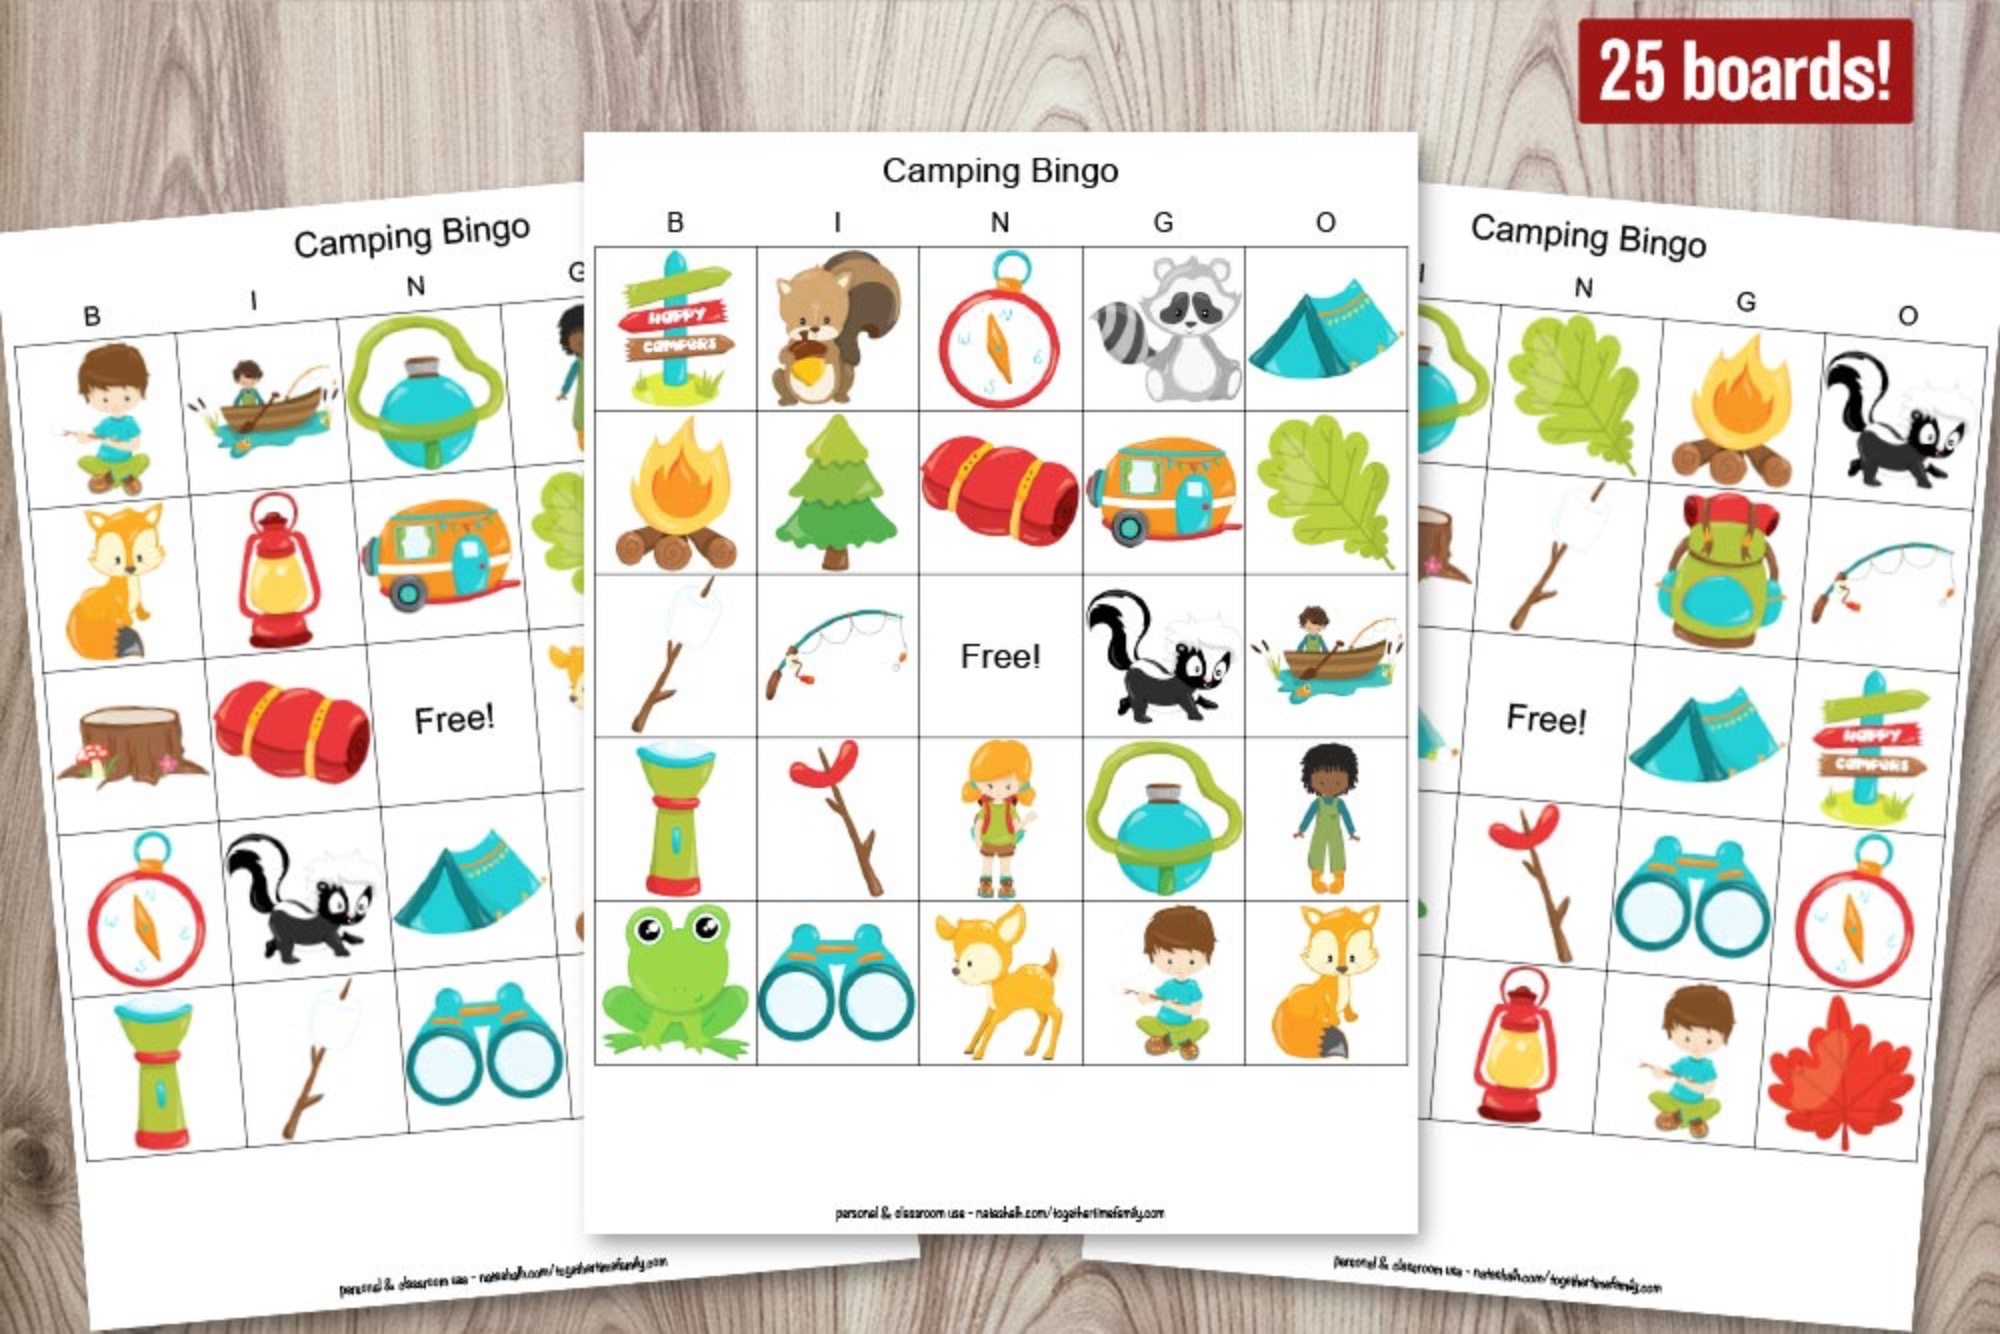 Camping Bingo Boards - 25 unique cards